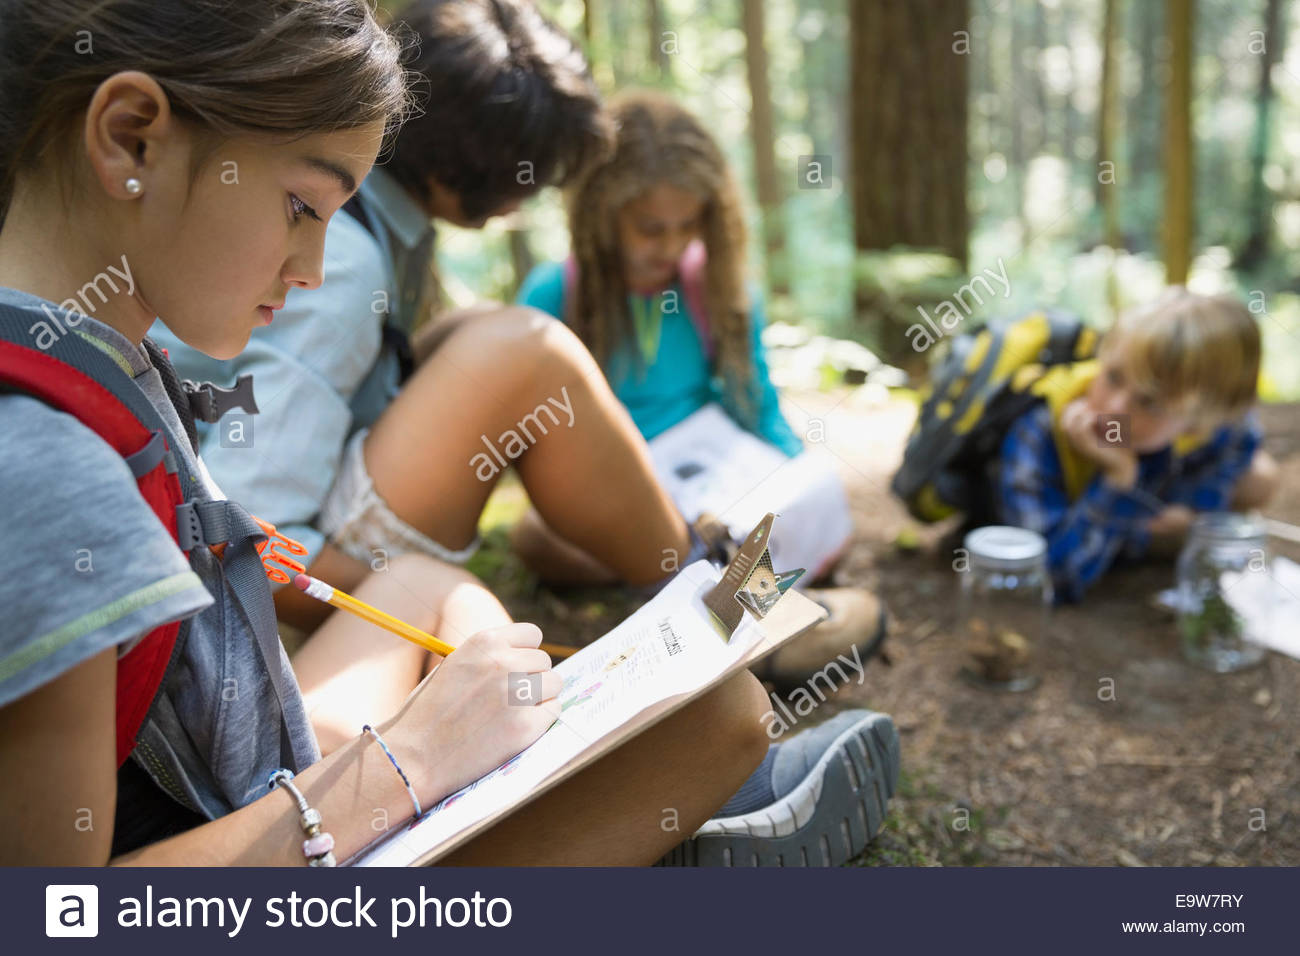 Children writing on clipboards in woods - Stock Image